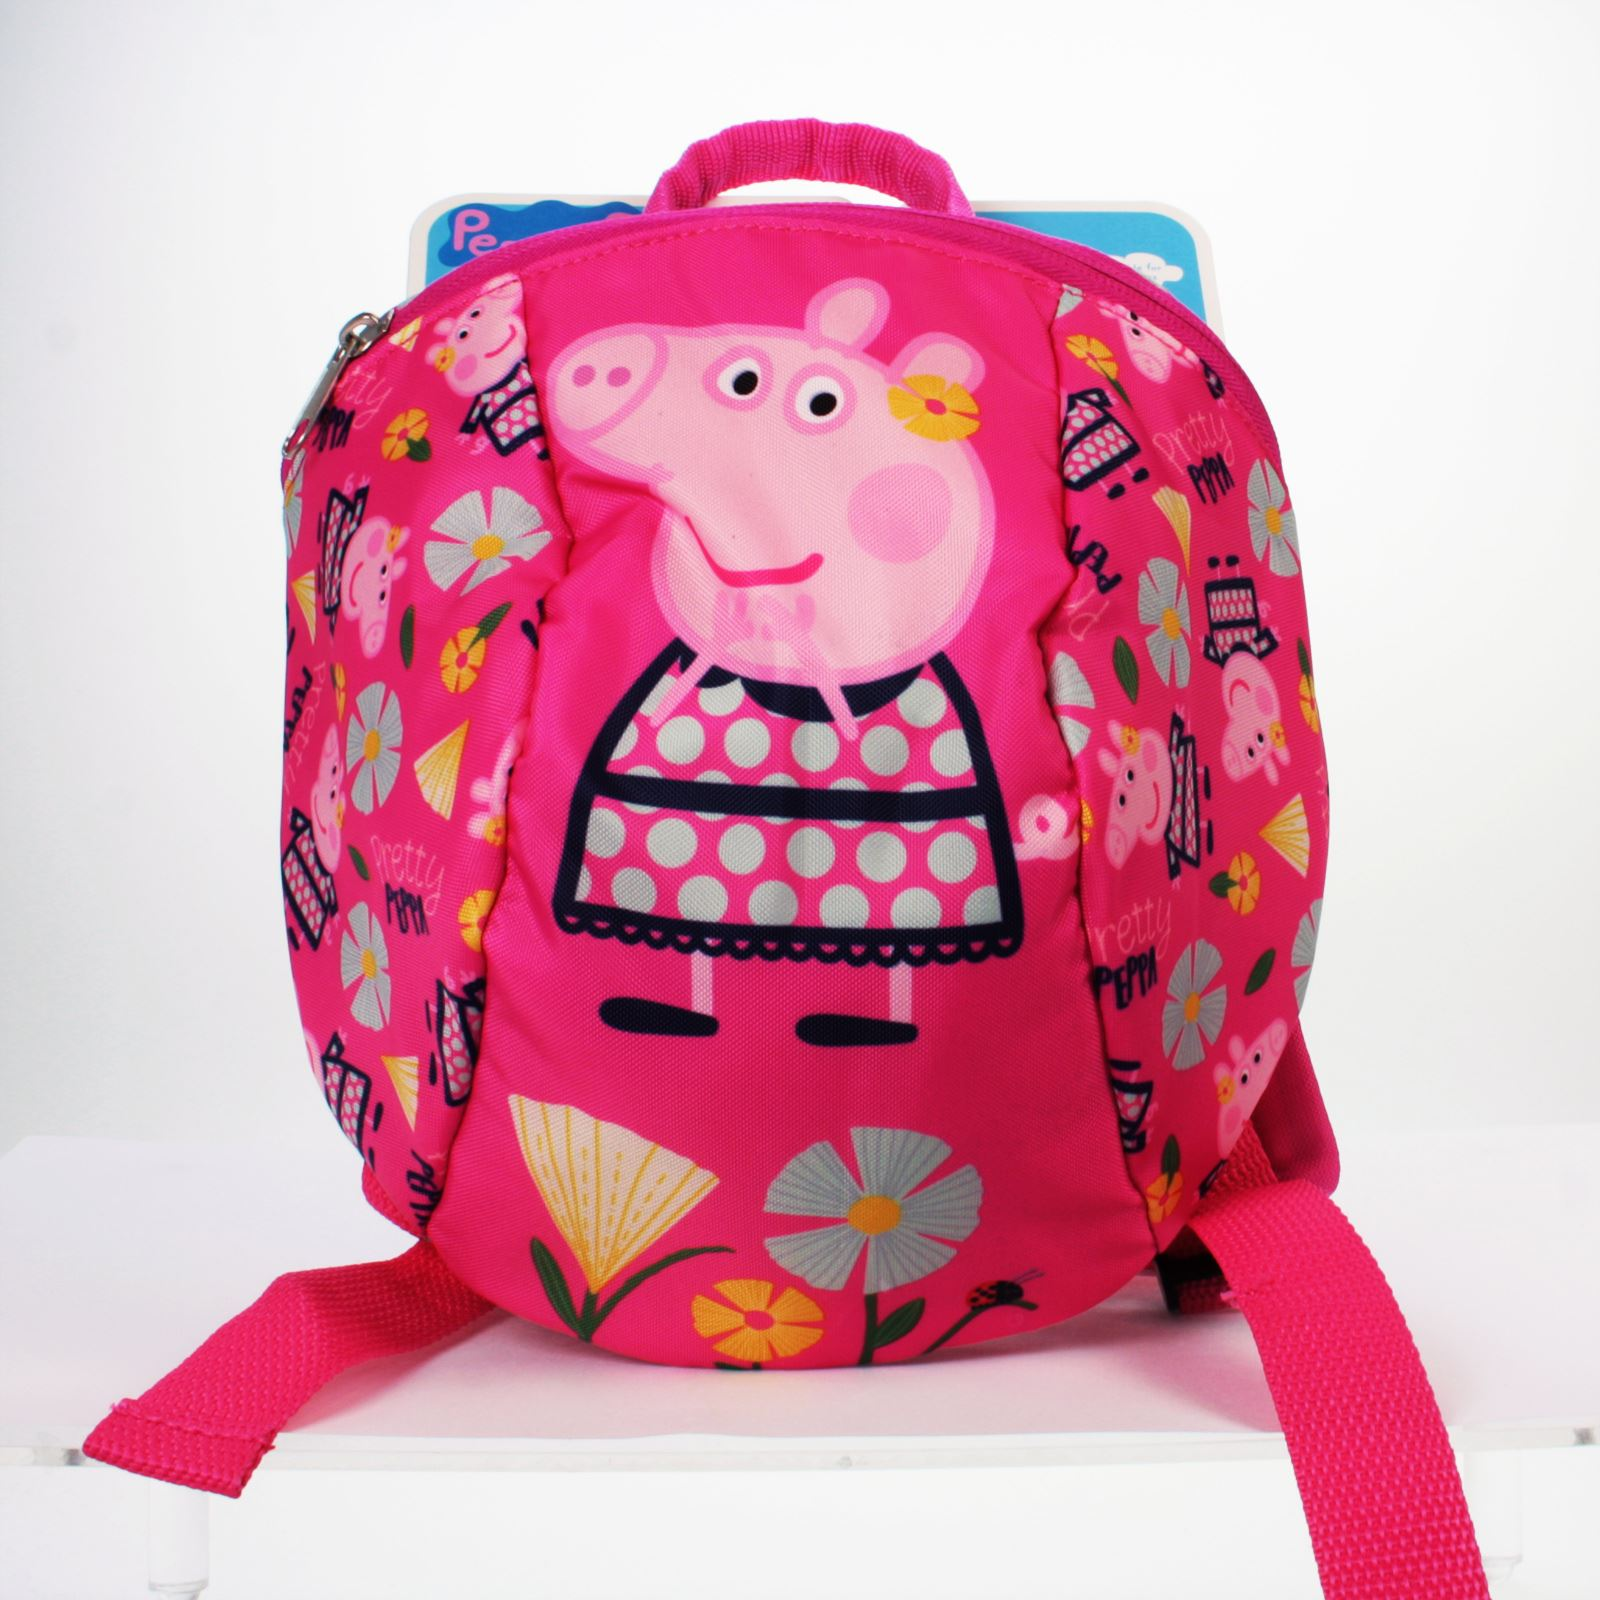 bfcdab4a9f PEPPA PIG JUNIOR TODDLER RUCKSACK BACKPACK WITH REINS HARNESS KIDS PINK